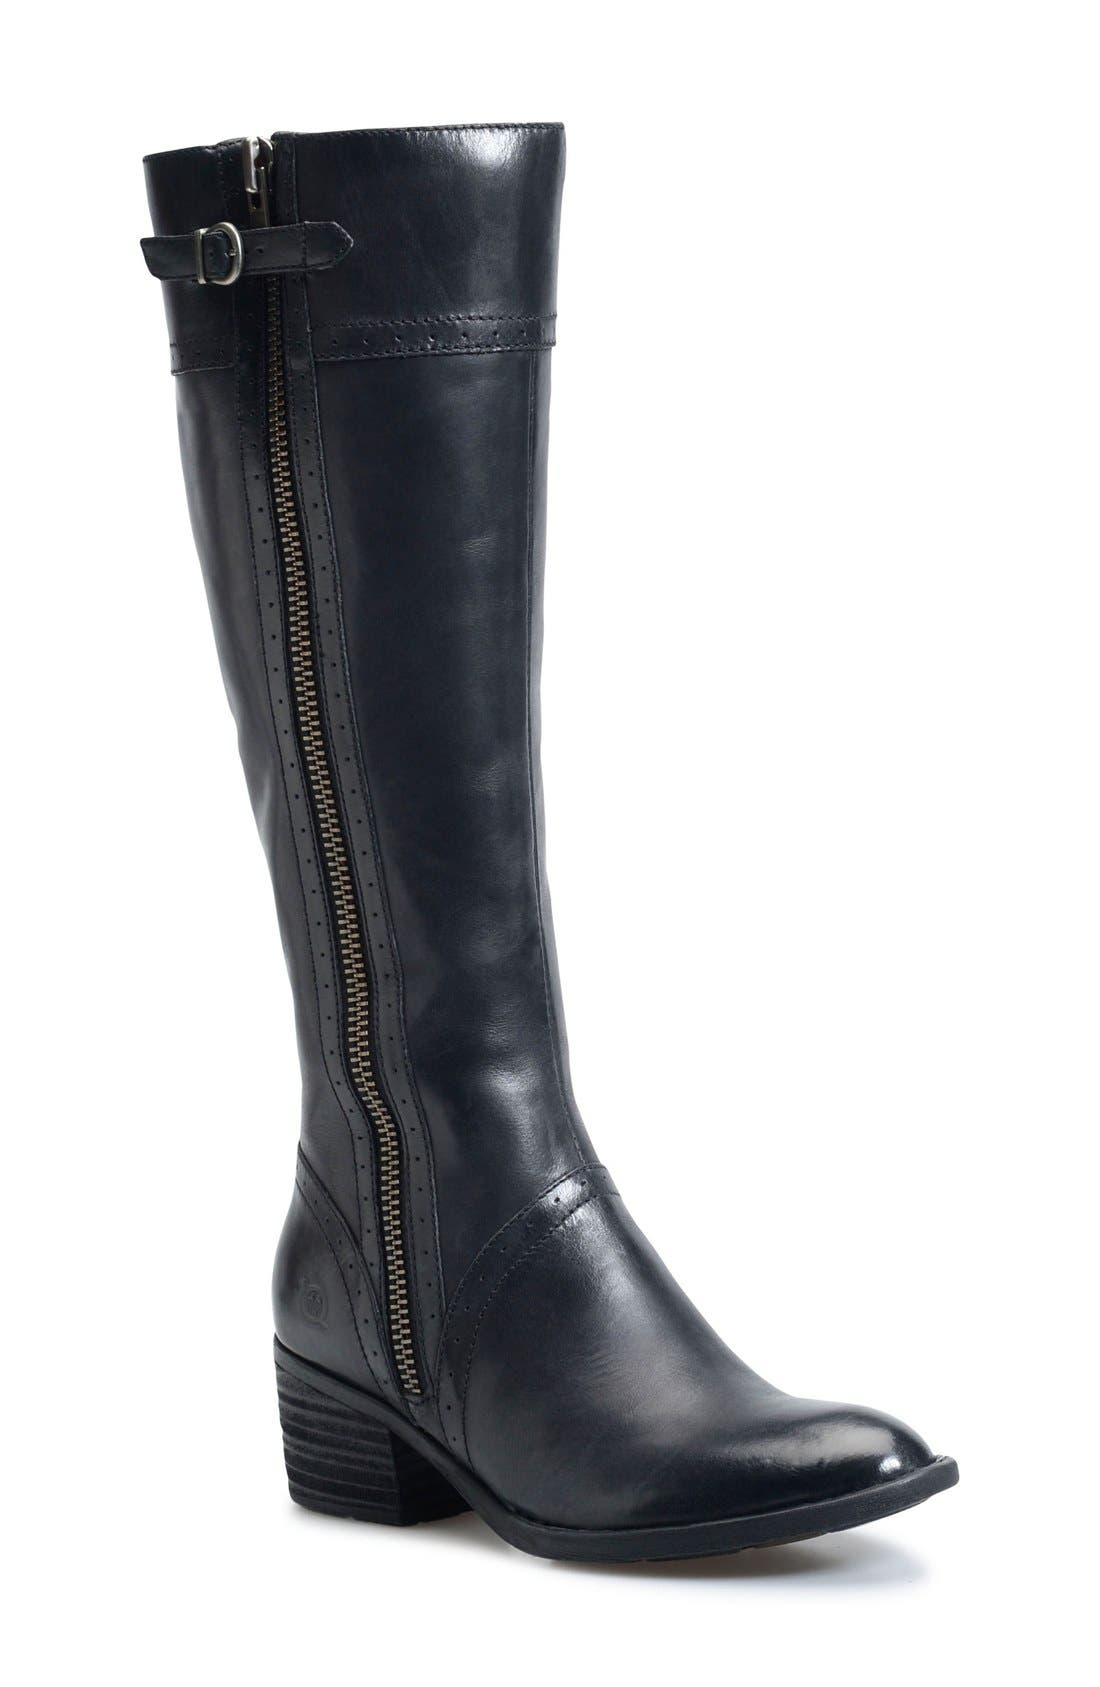 Women's Knee-High Wide Boots, Boots for Women | Nordstrom